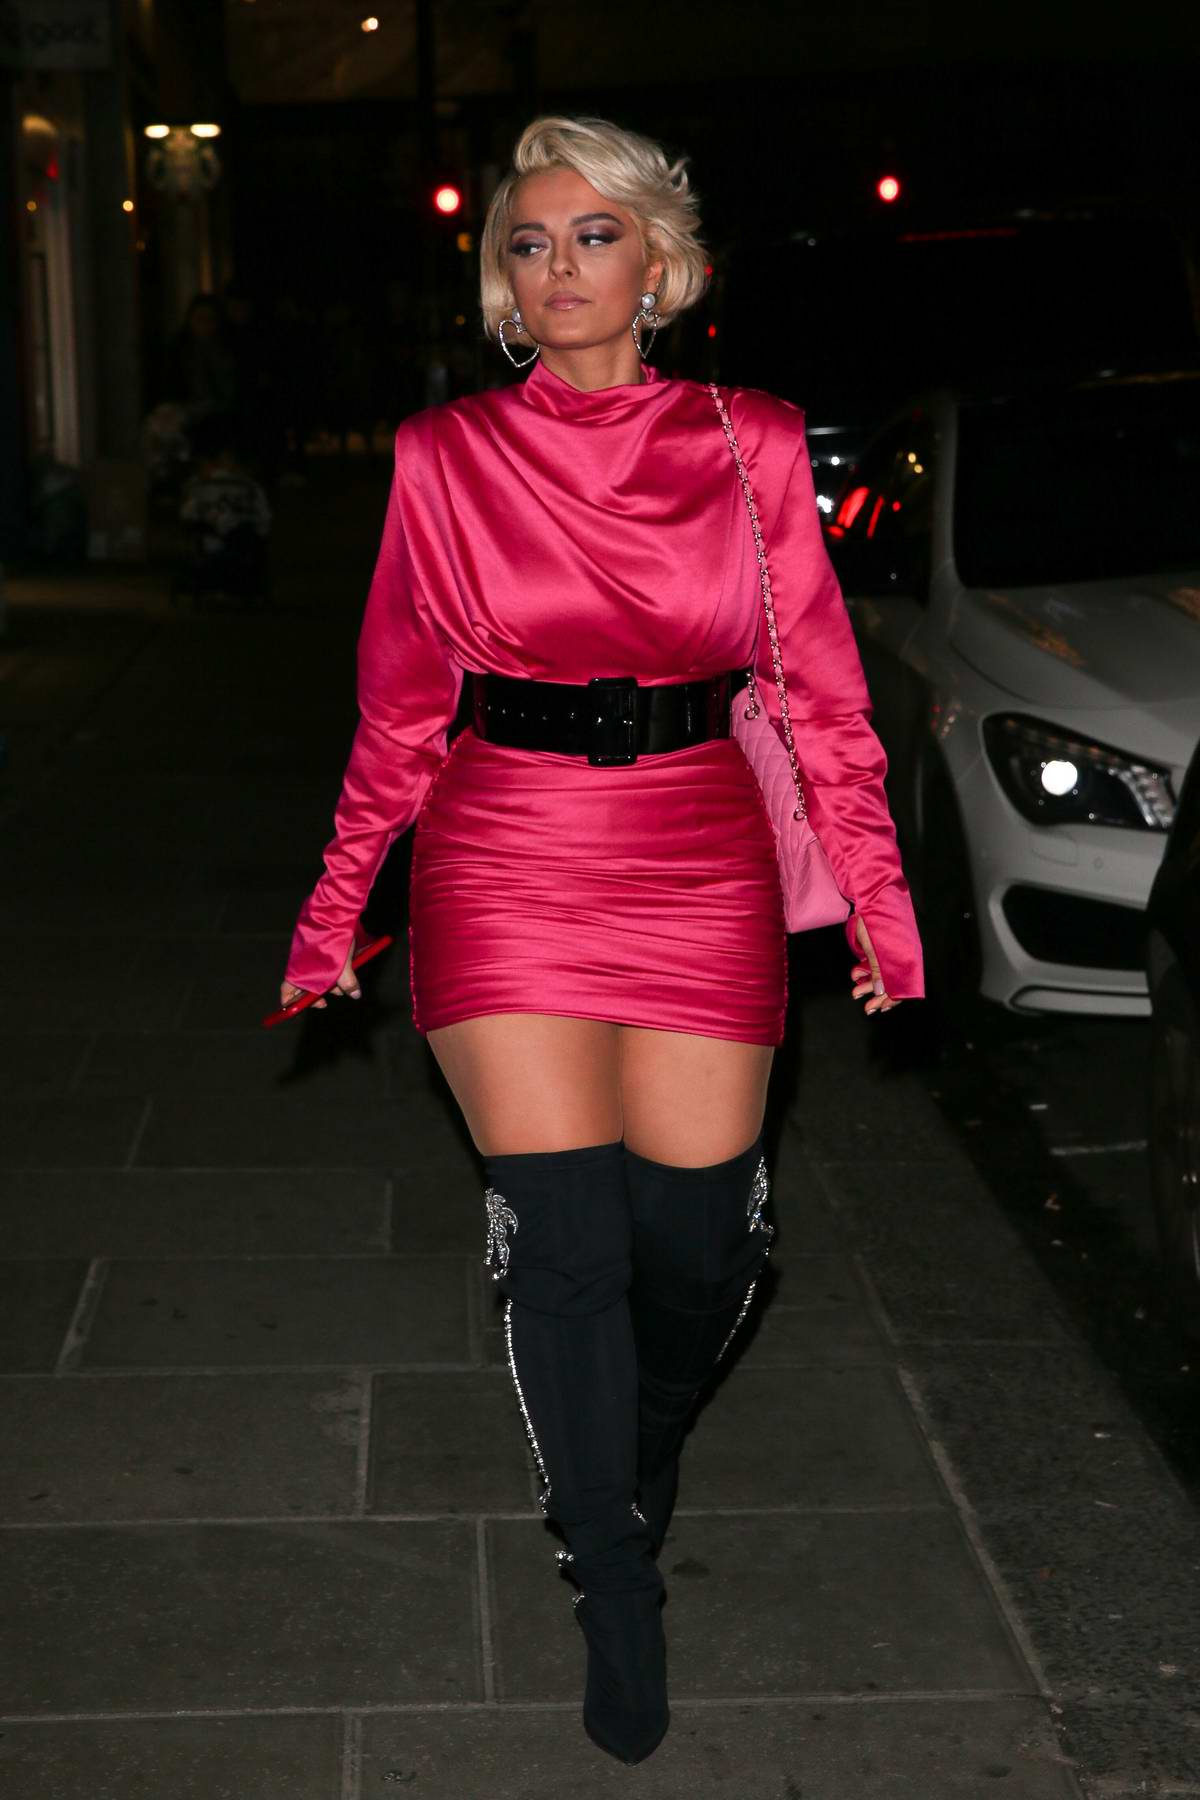 Bebe Rexha and Dua Lipa steps out for dinner in London, UK